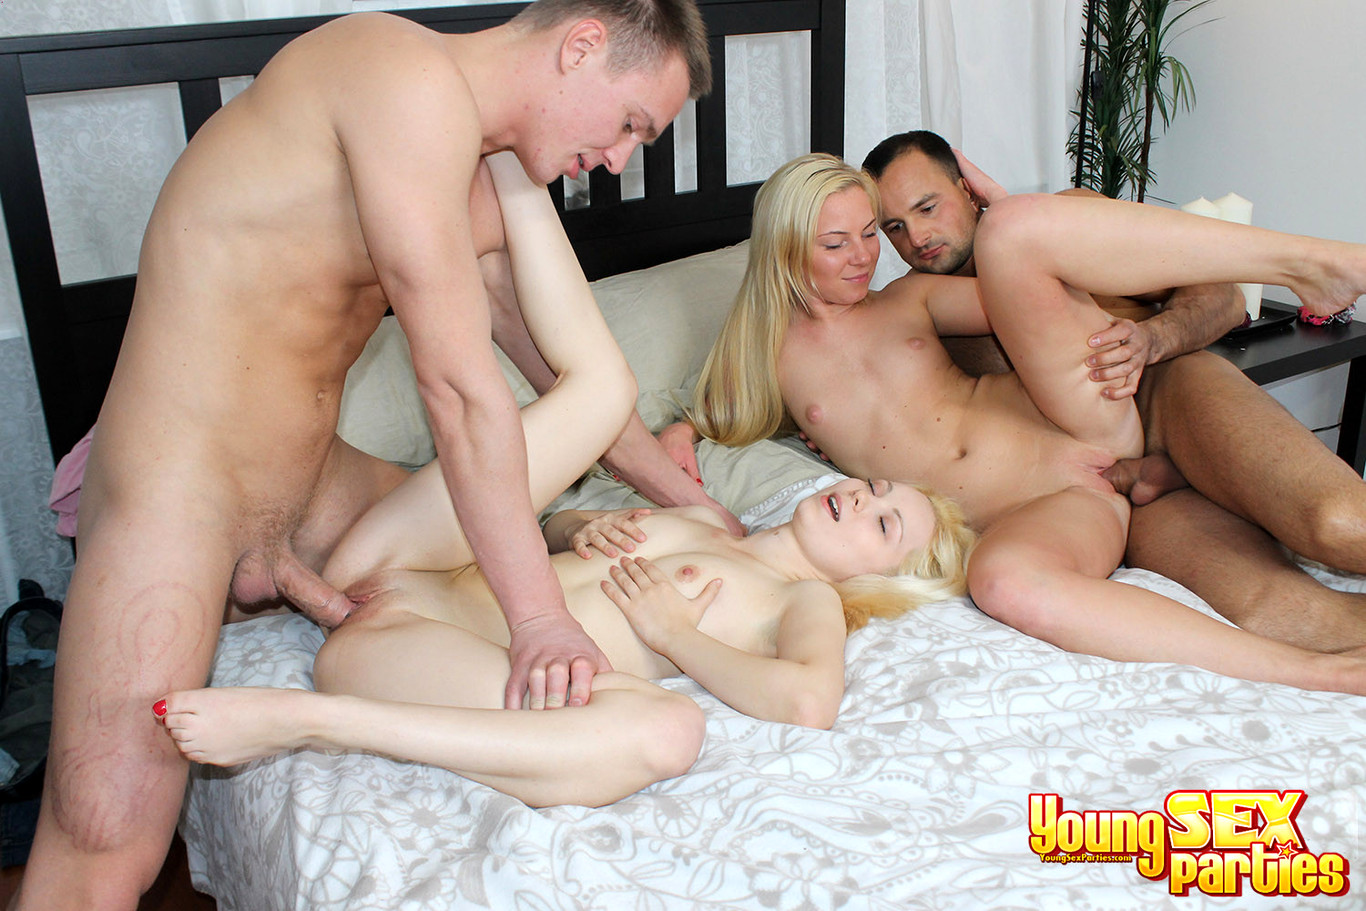 Watch young sex 11